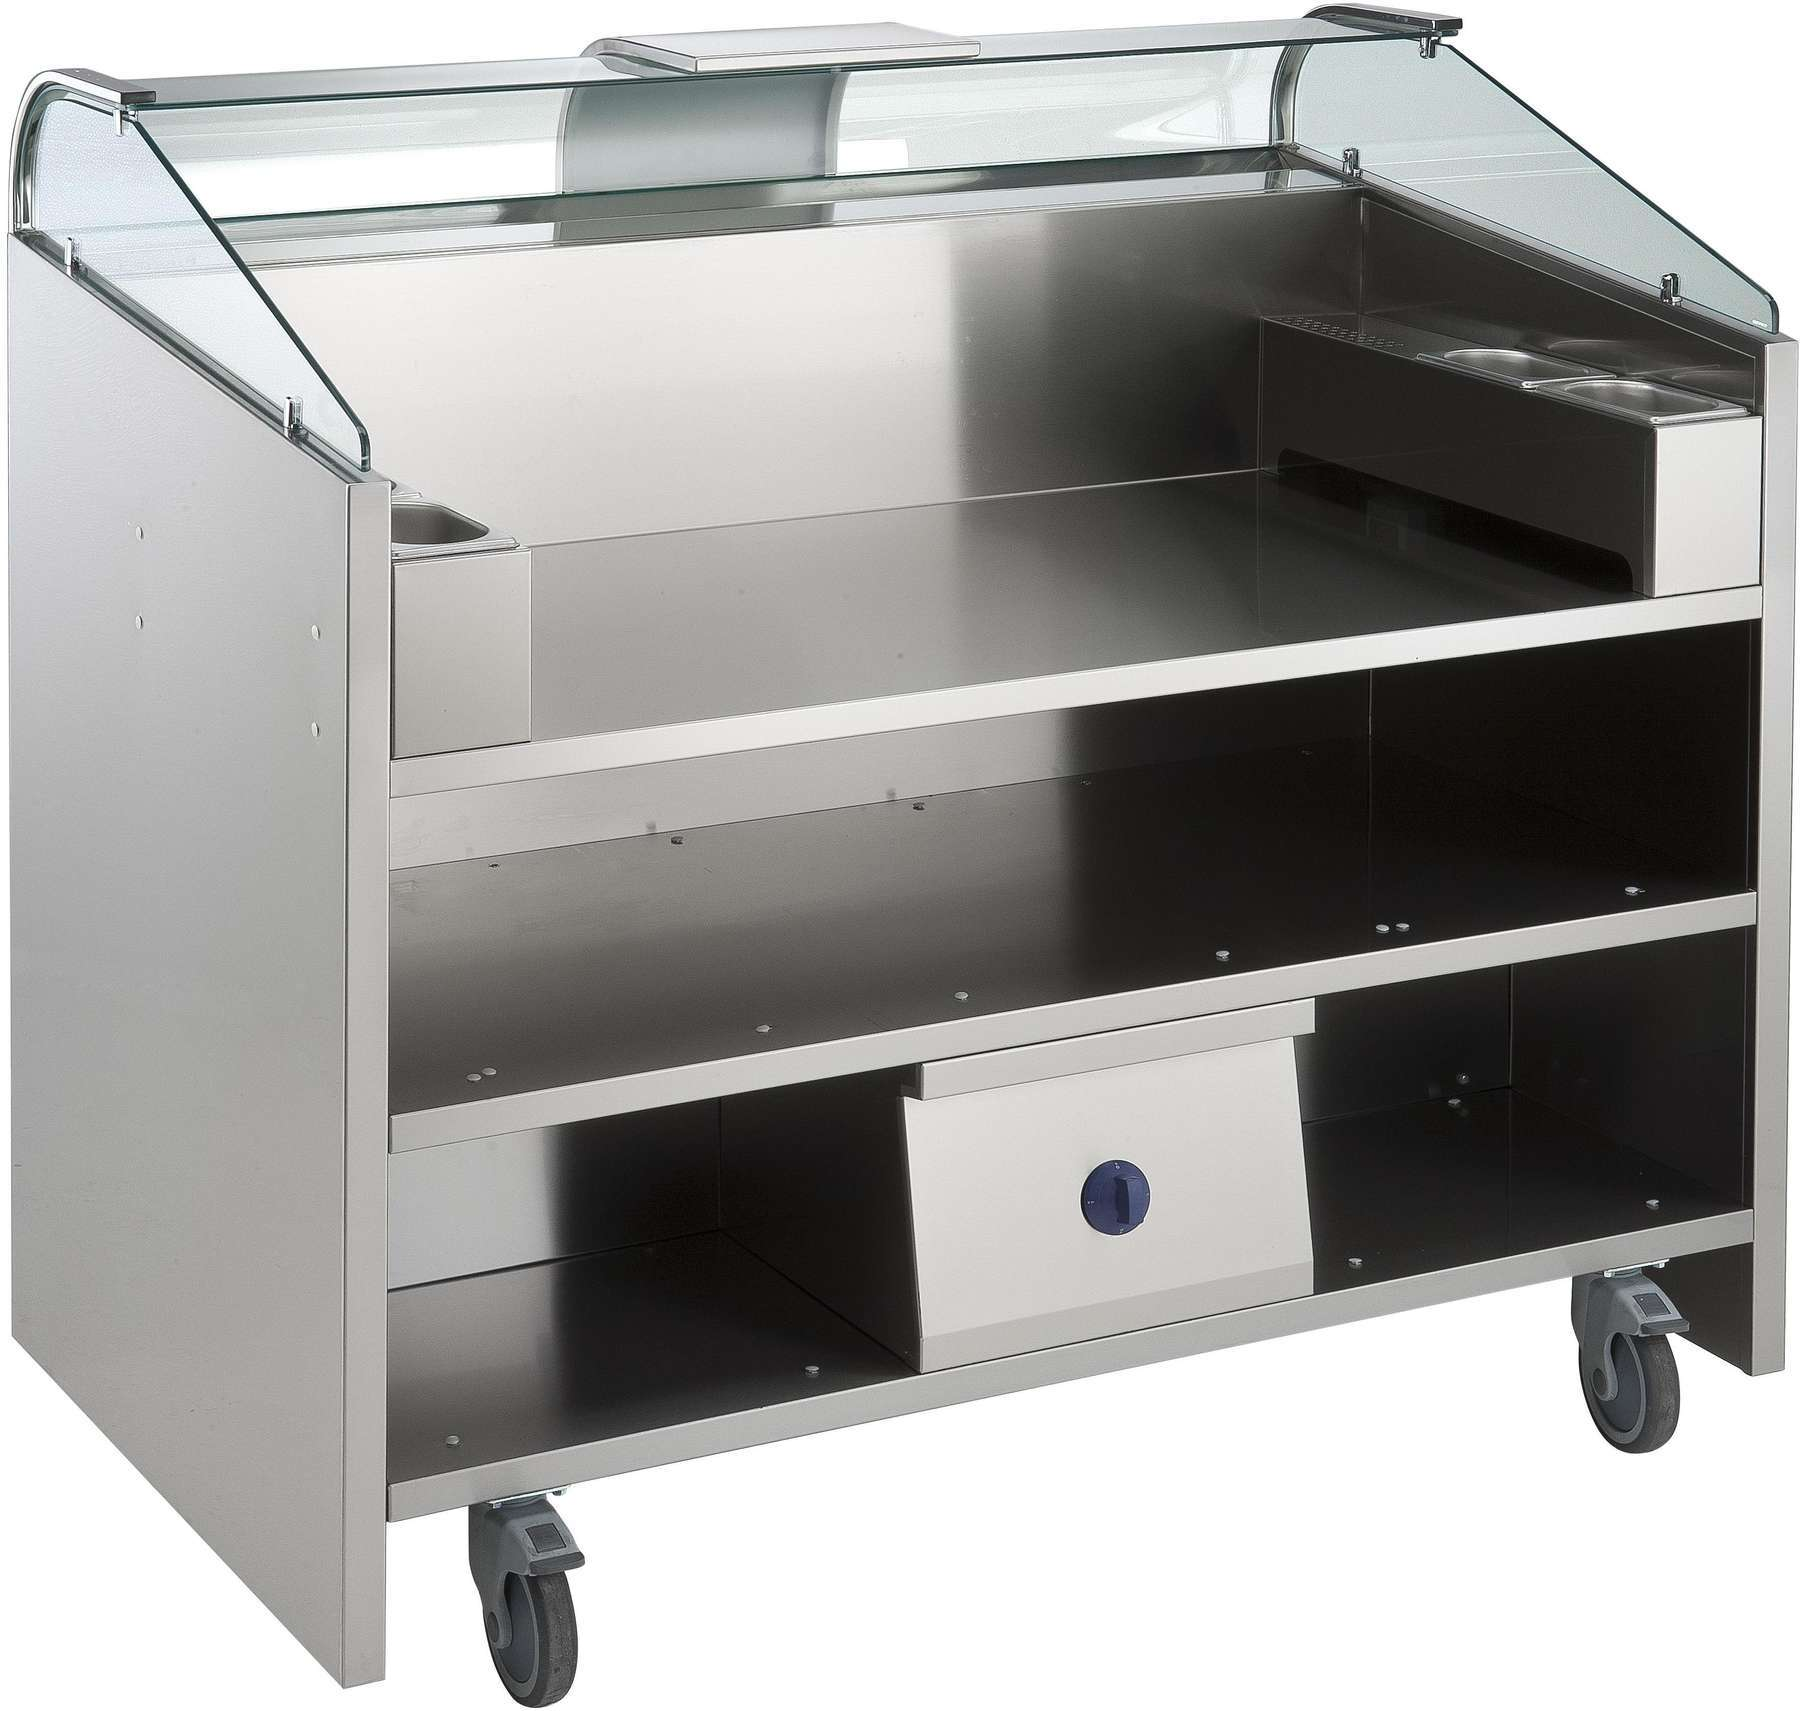 Commercial Kitchen Equipment Specs